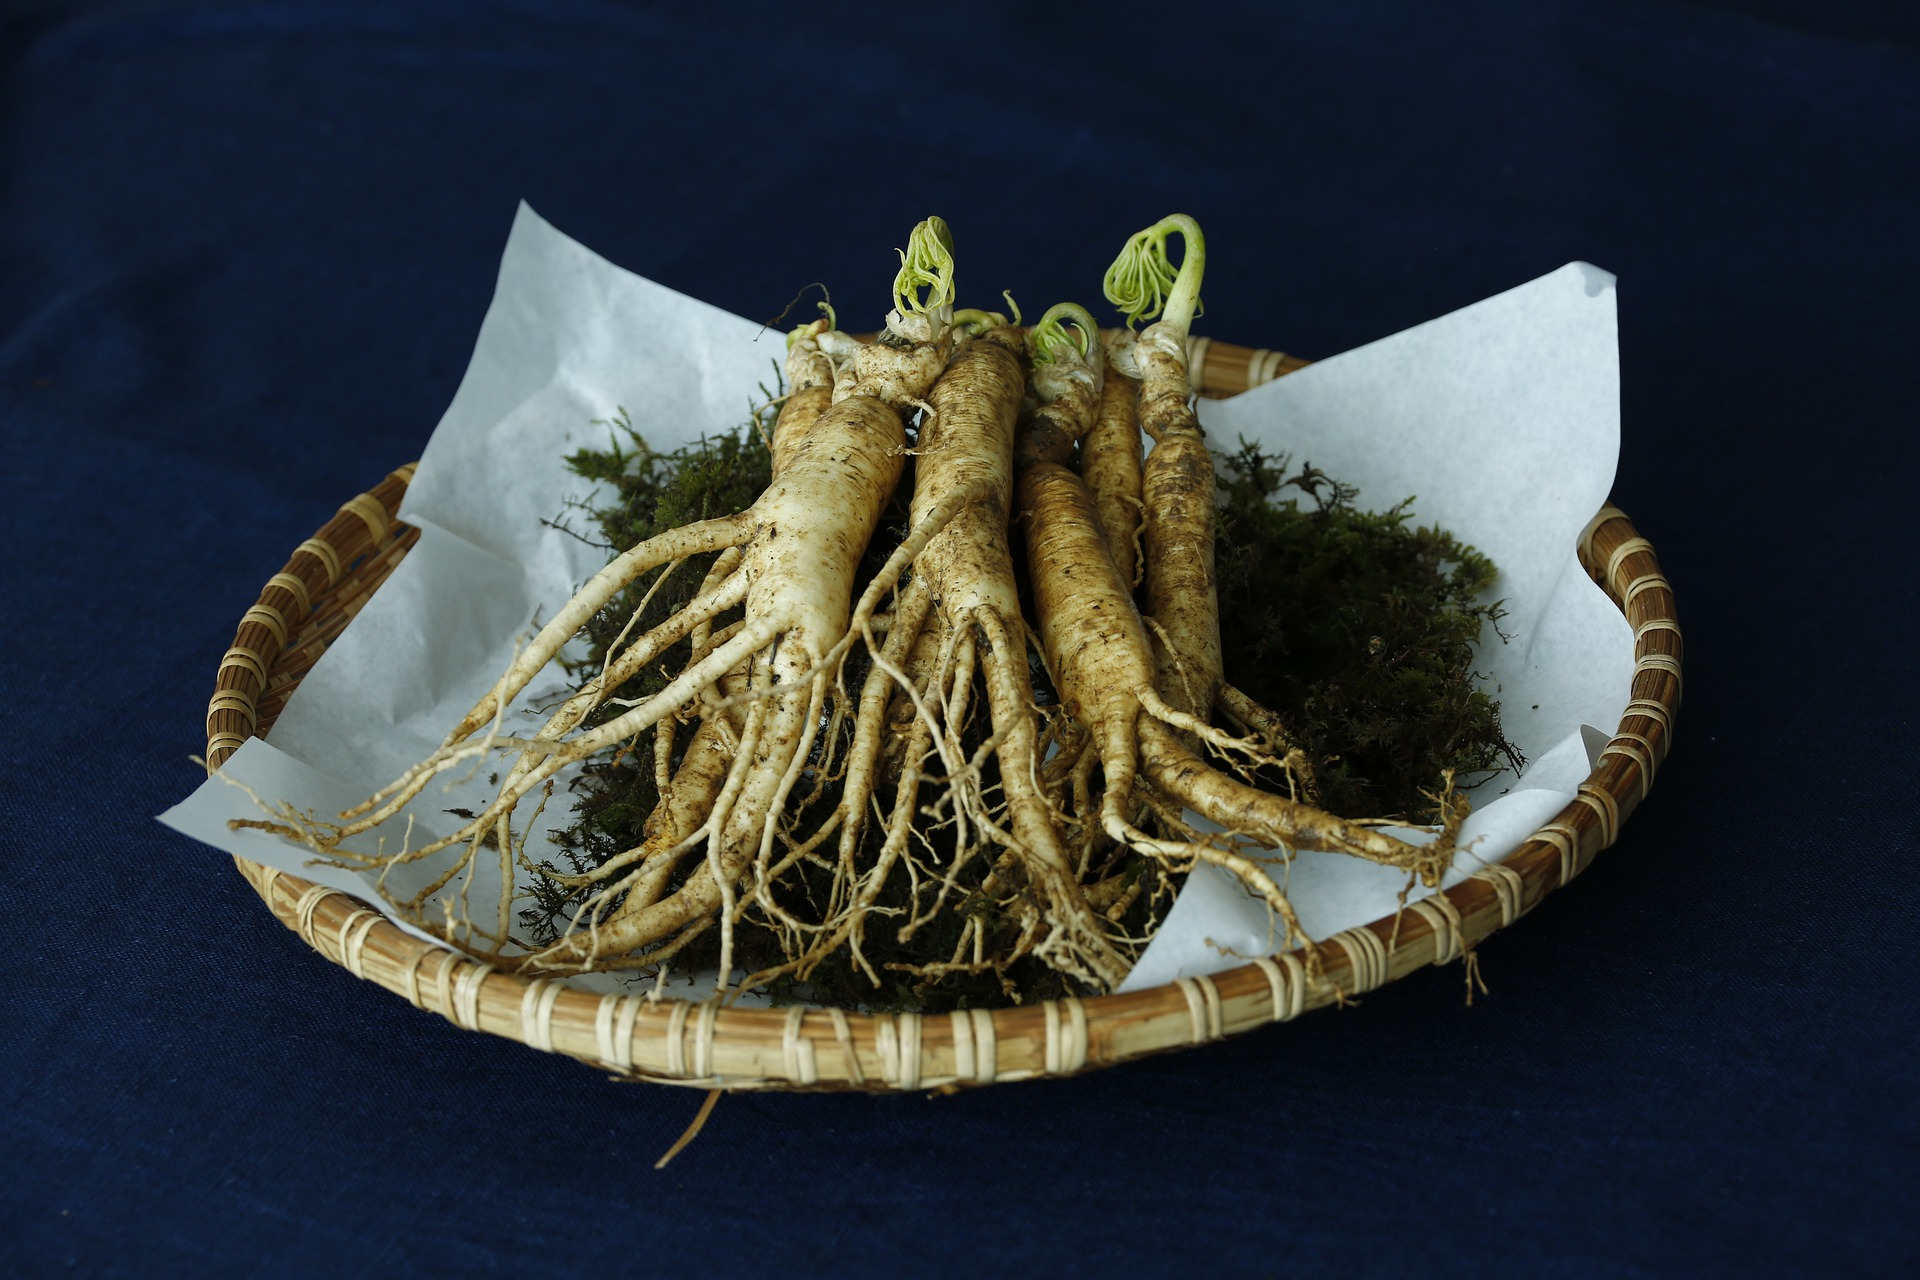 Herb ginseng on a plate